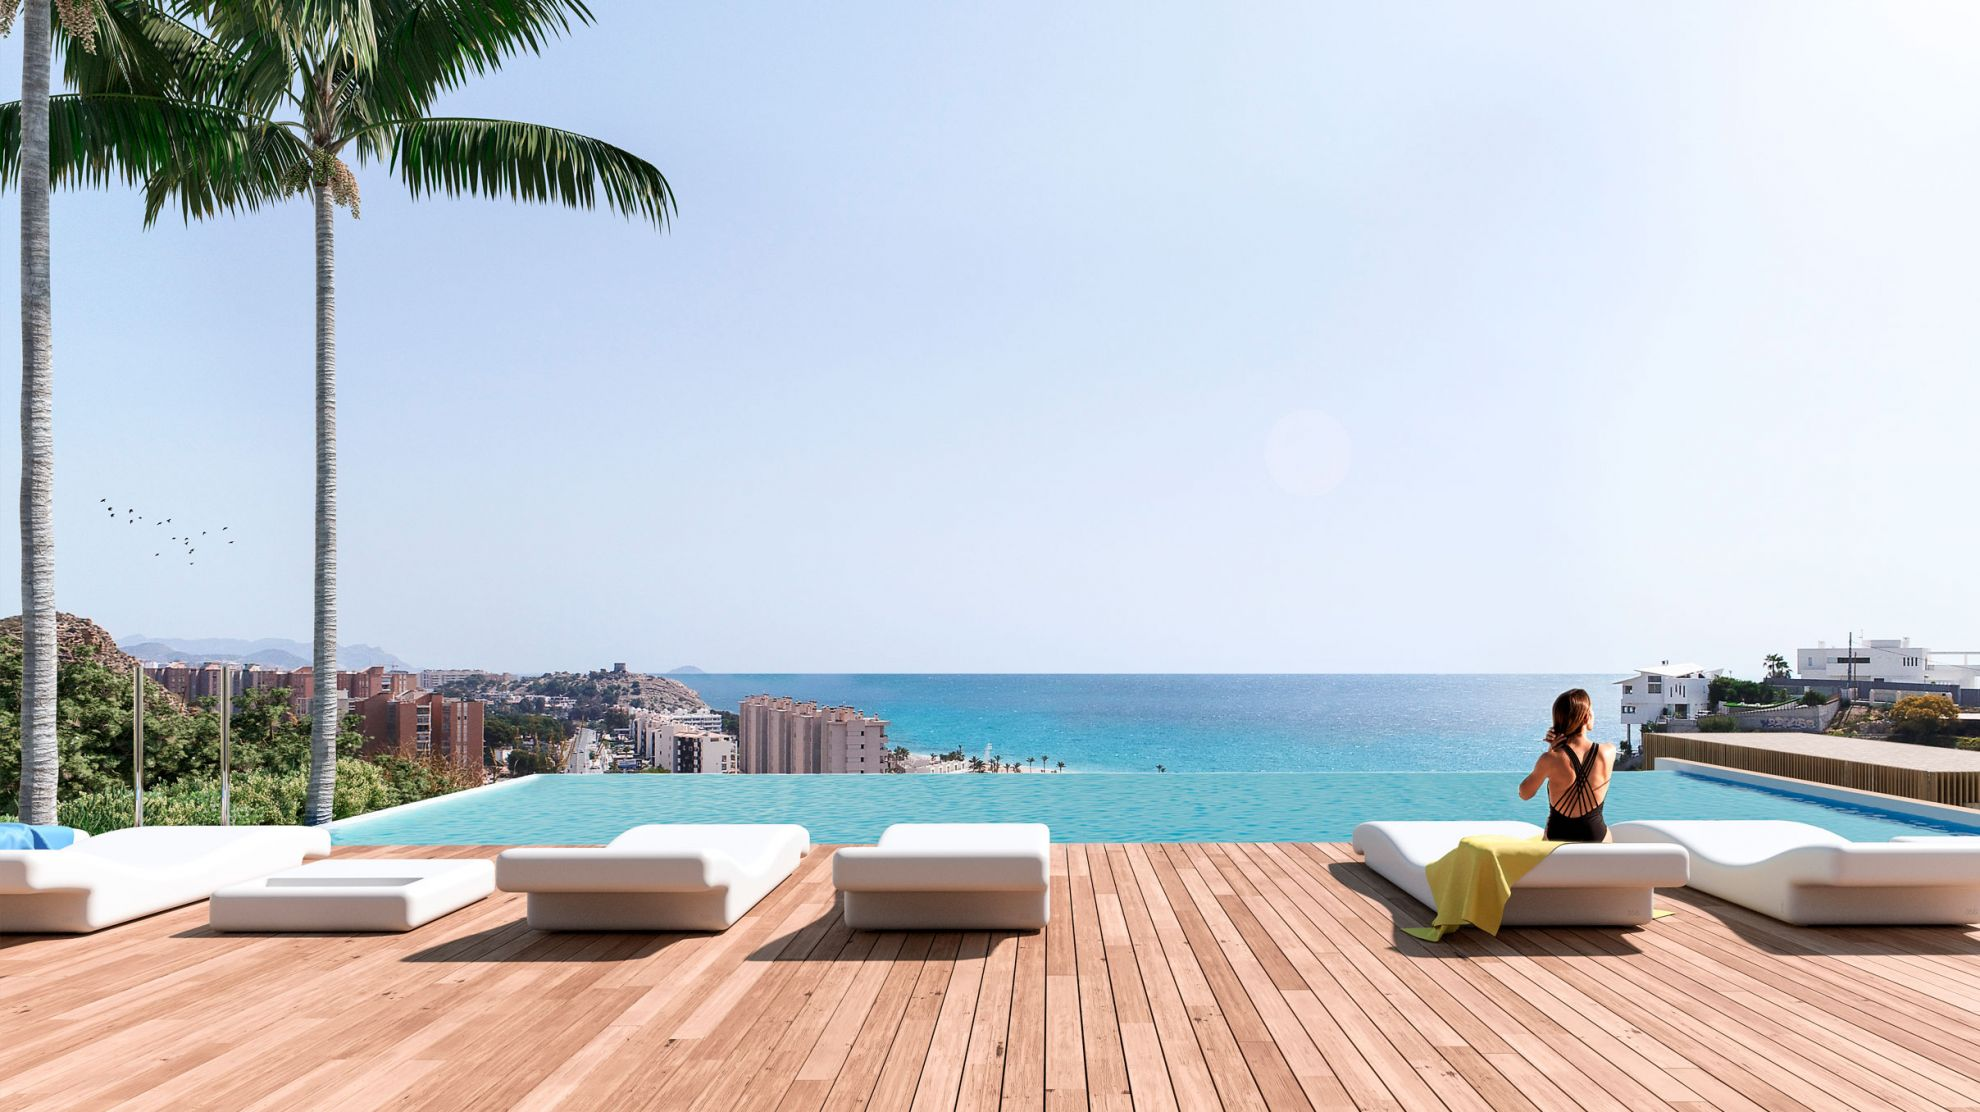 2 and 3 bedroom penthouse-style apartments with big terraces overlookg the sea. House 13 10